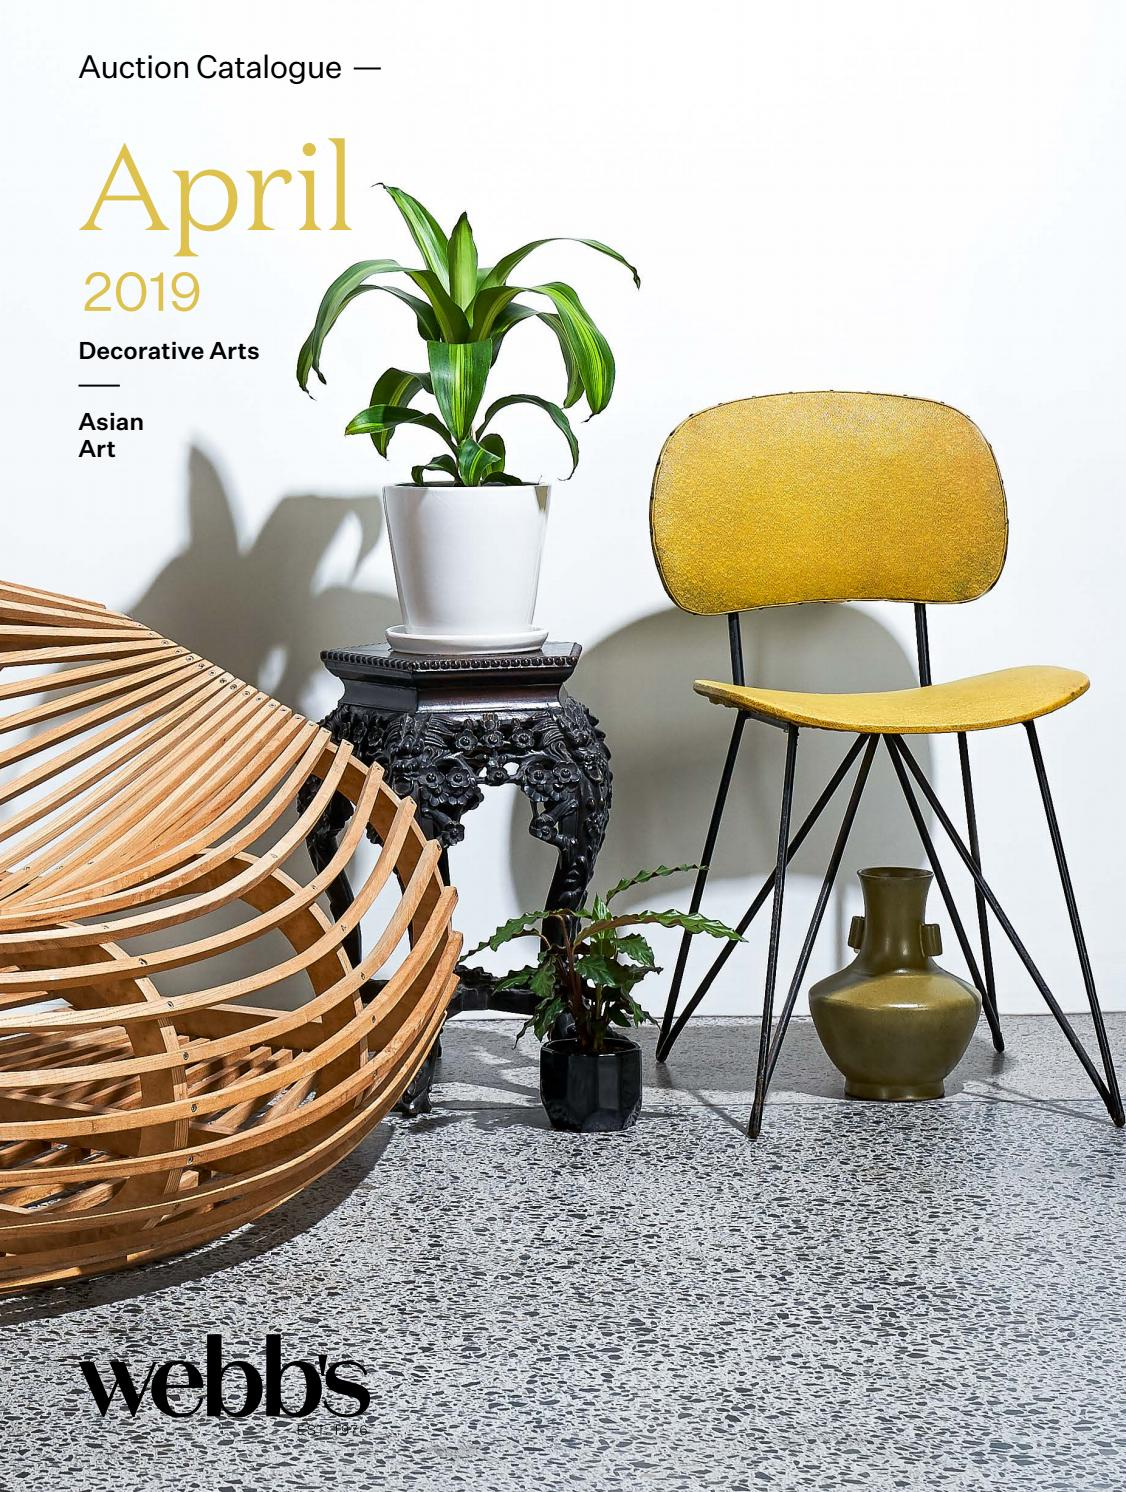 Lc2 Le Corbusier Cassina Occasion decorative arts and asian art april catalogue by webb's